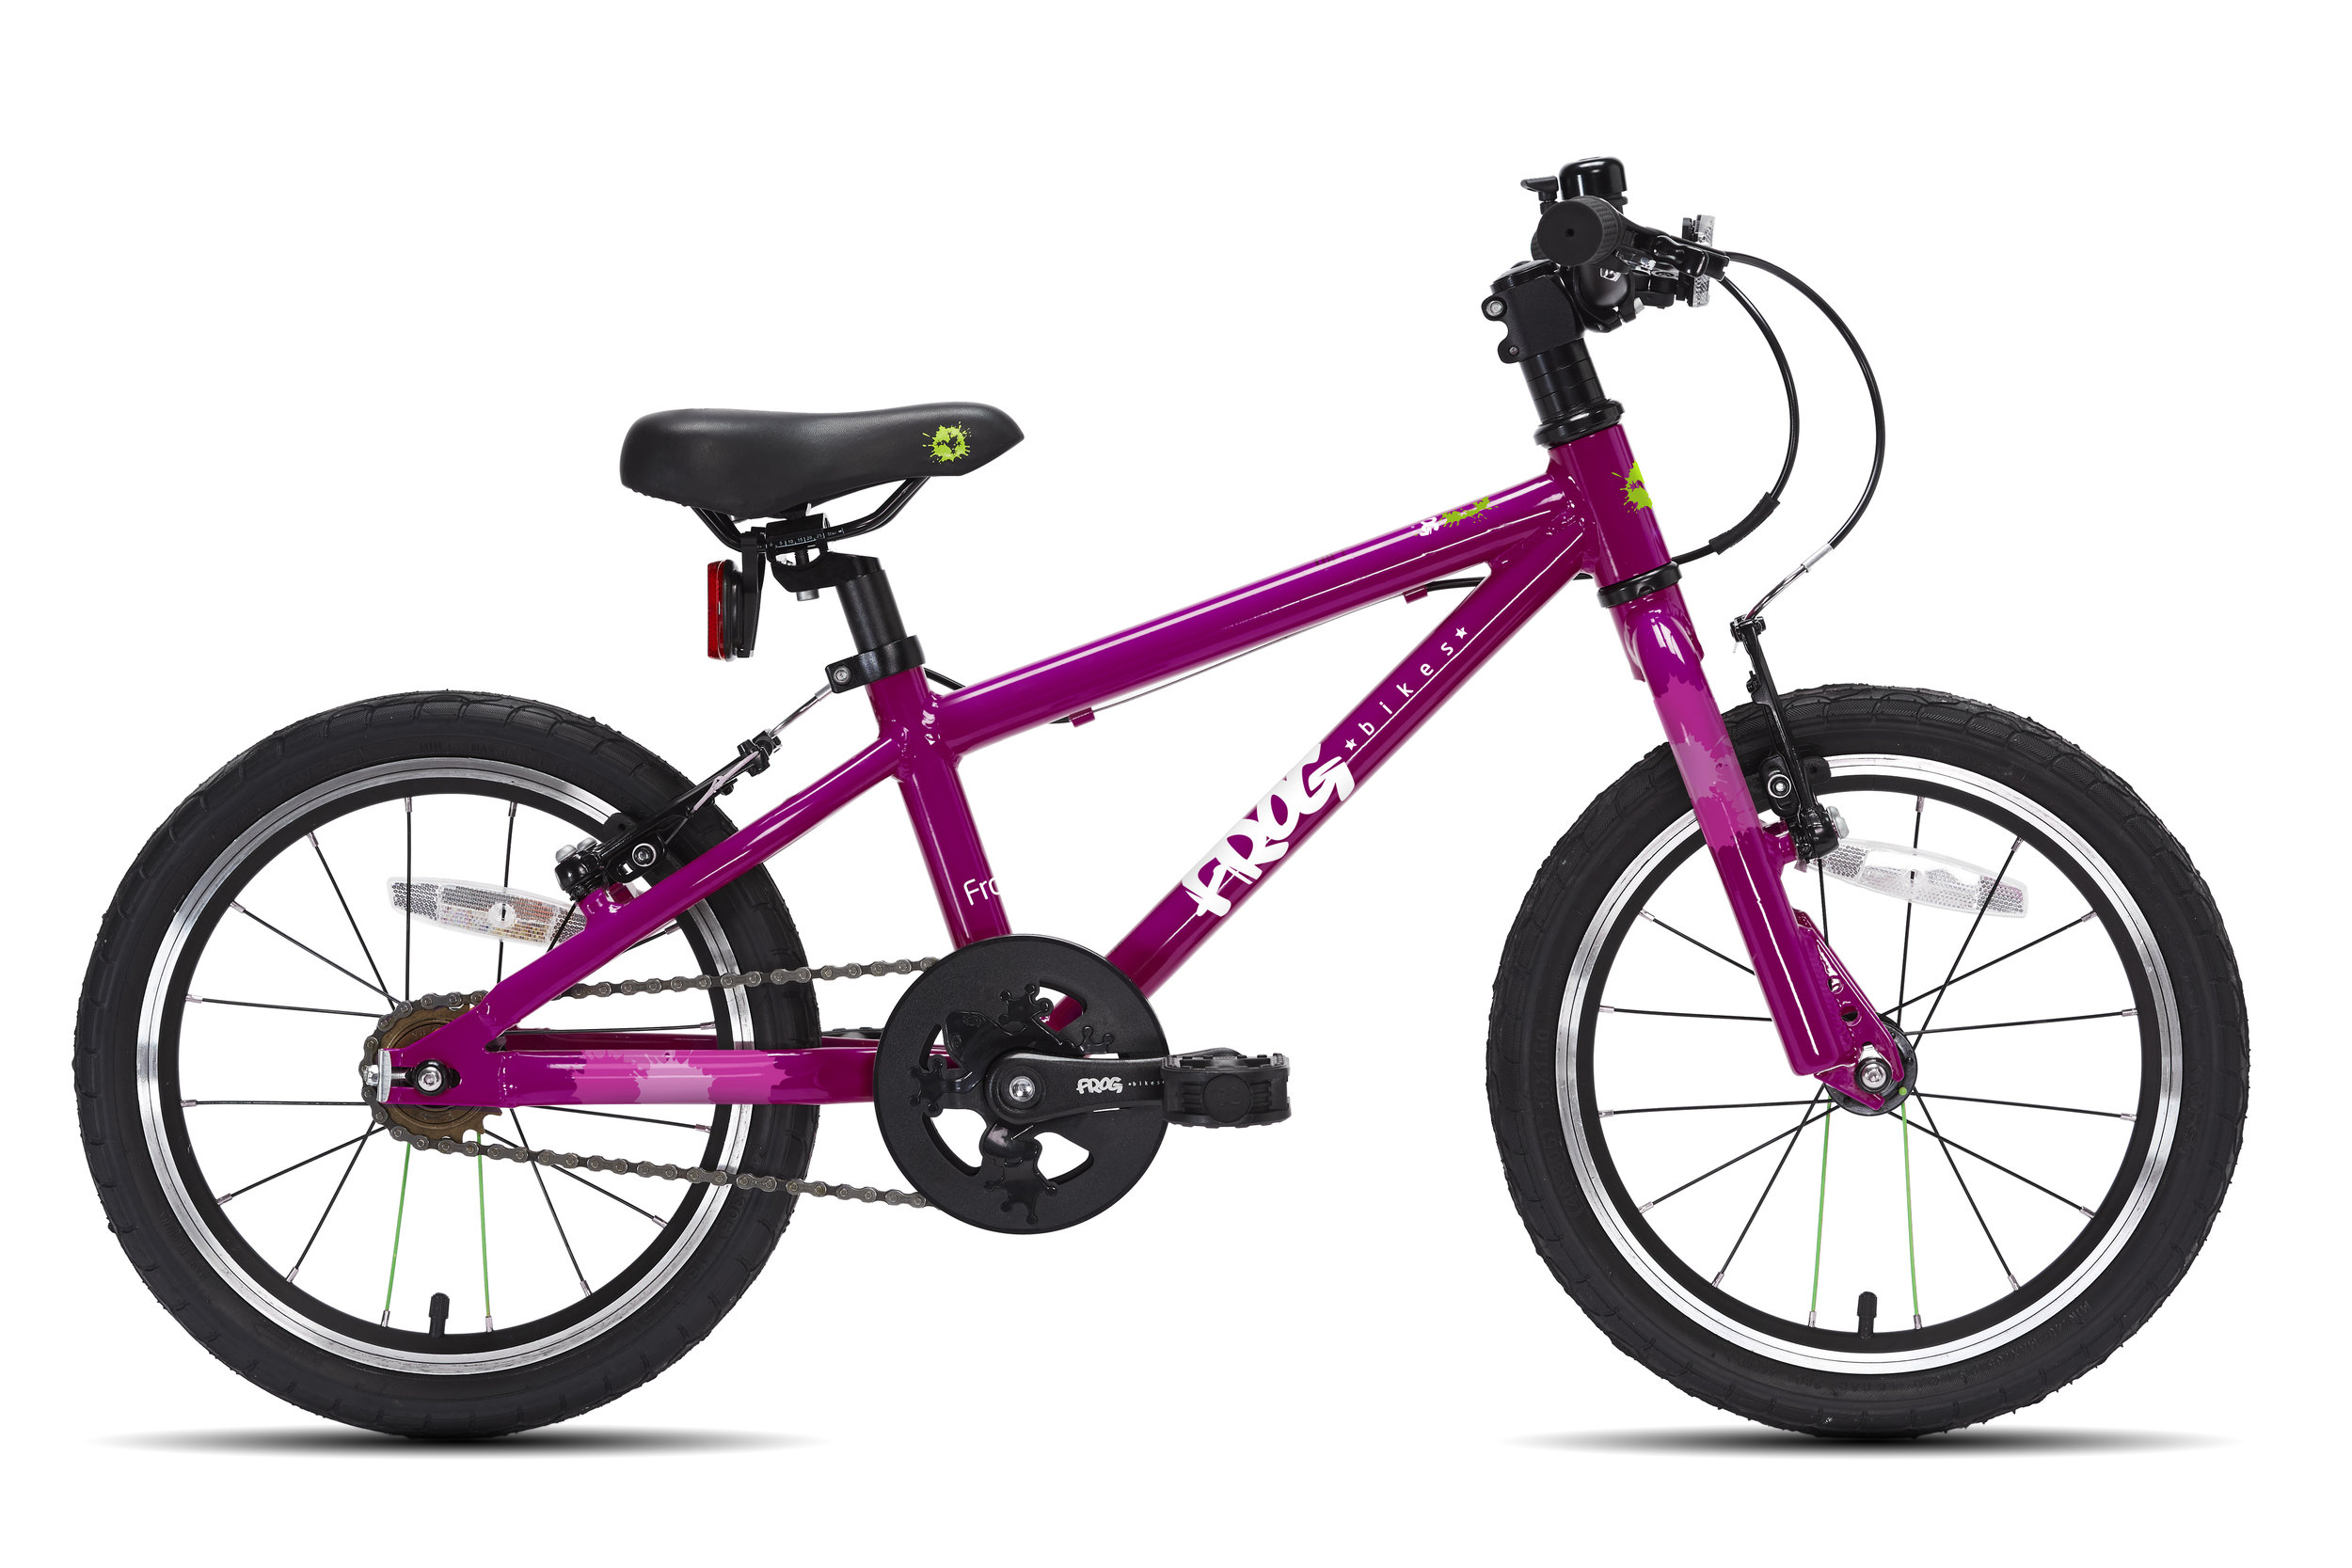 Frog 48 - The first pedal 48 is a great value bike for 4-5 year olds with a minimum inside leg of 48cm. This bike is a great confidence booster and can be used as a balance bike for a taller child by removing the pedals